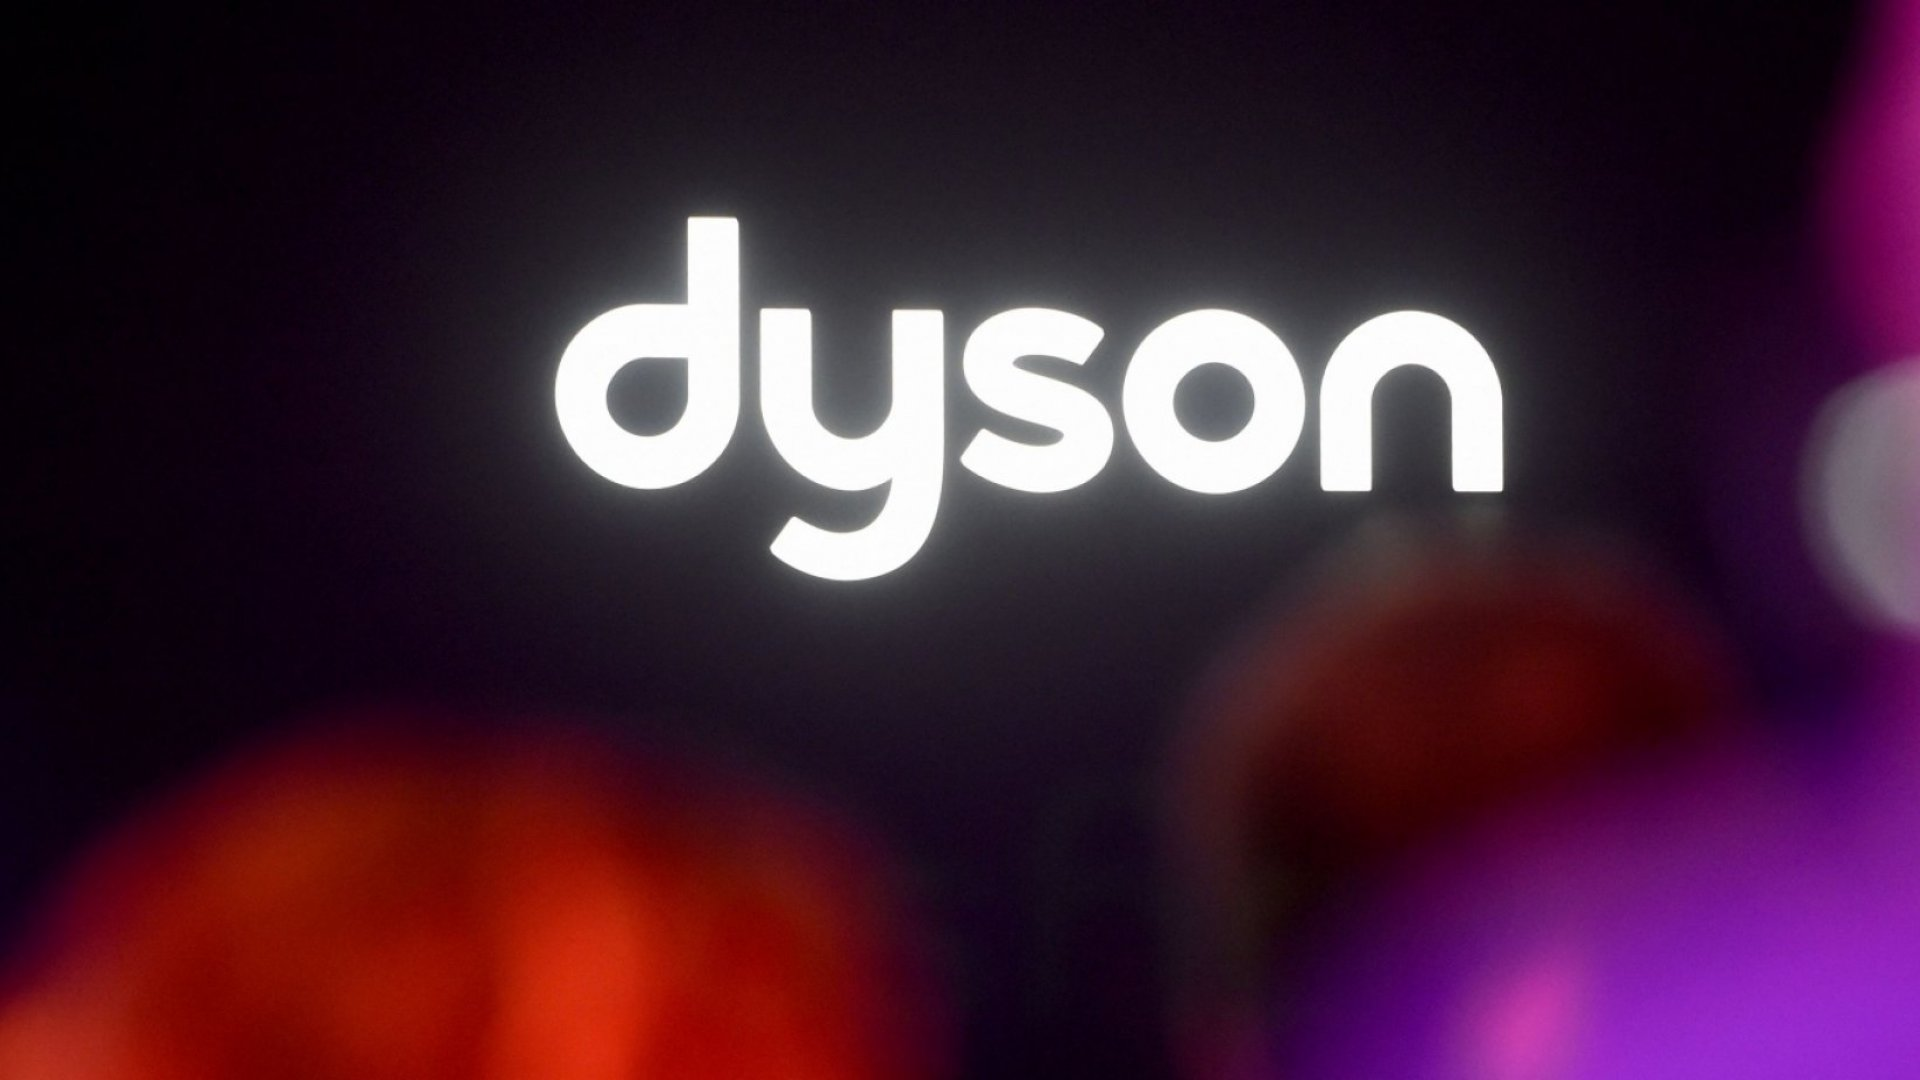 In Just 10 Days, Dyson Designed a Completely New Ventilator Specifically for Covid-19 Patients